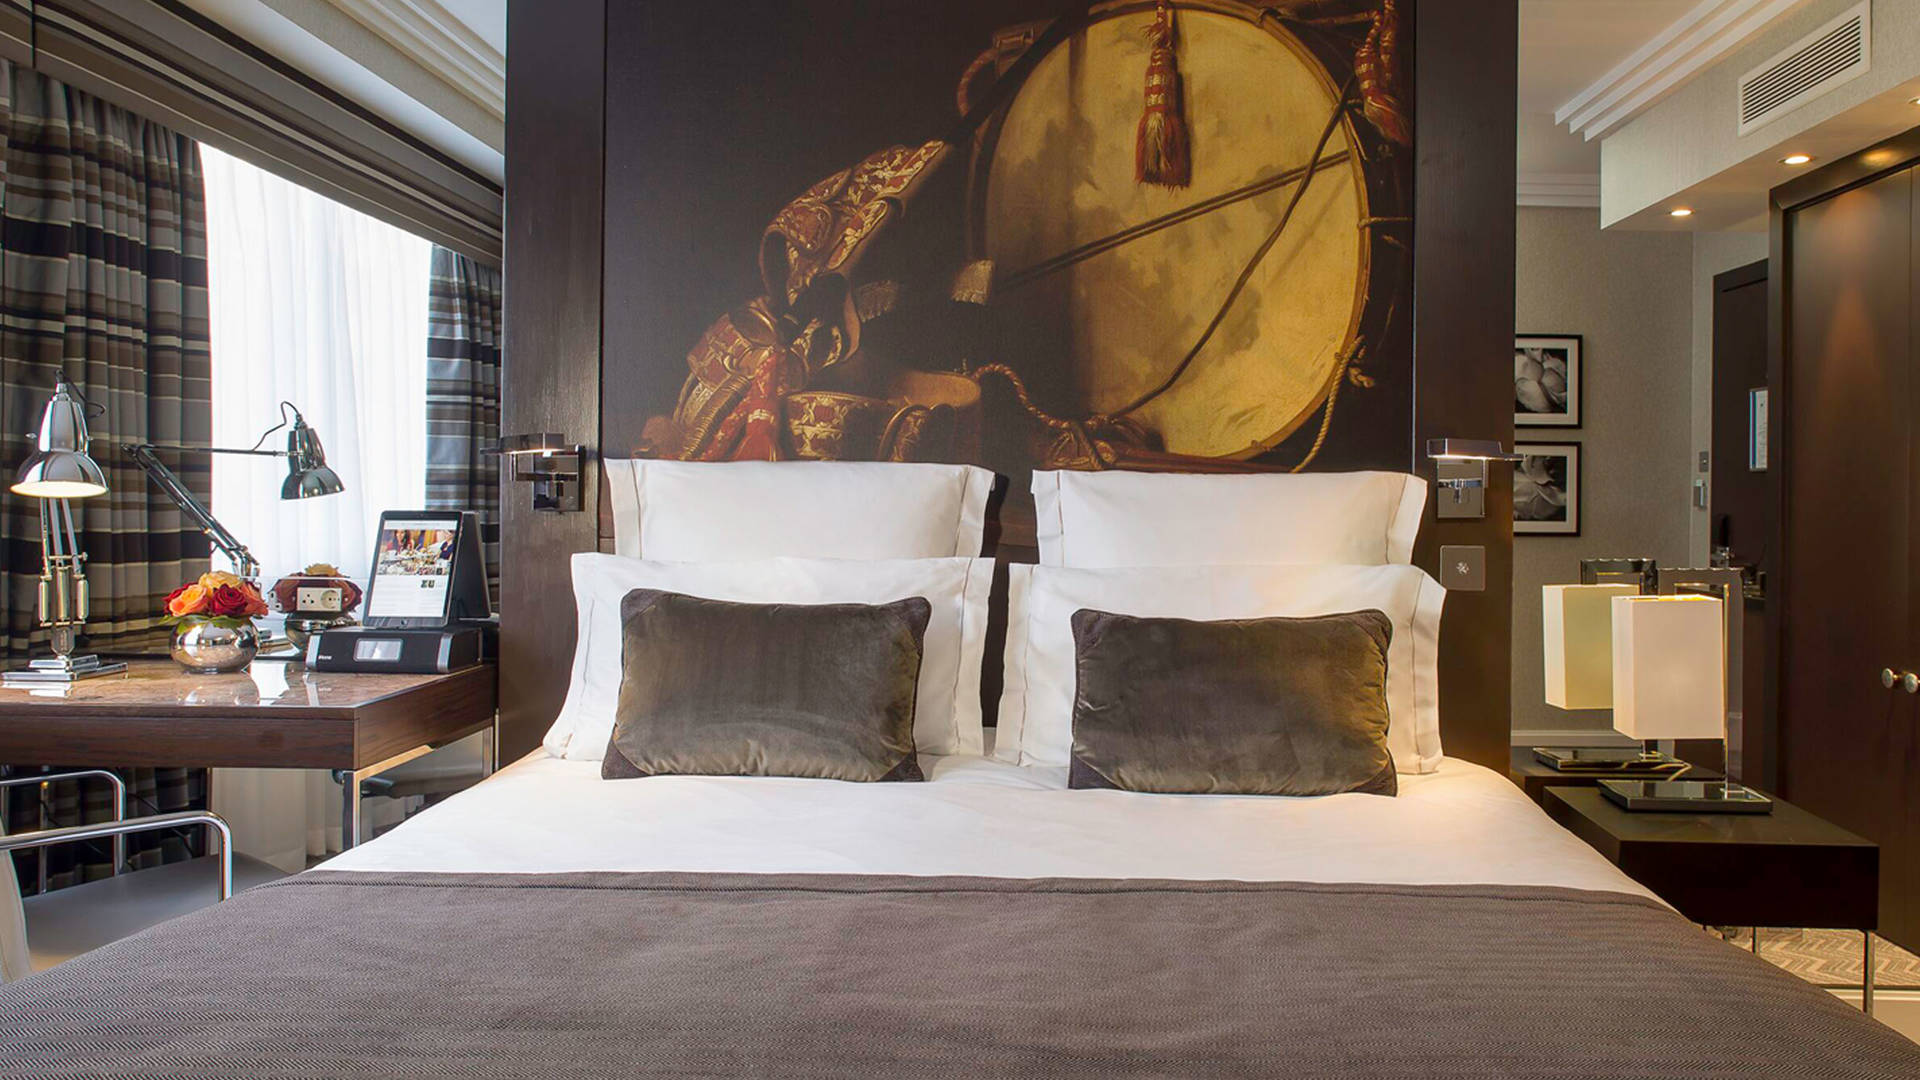 Superior Room at Jumeirah Lowndes Hotel